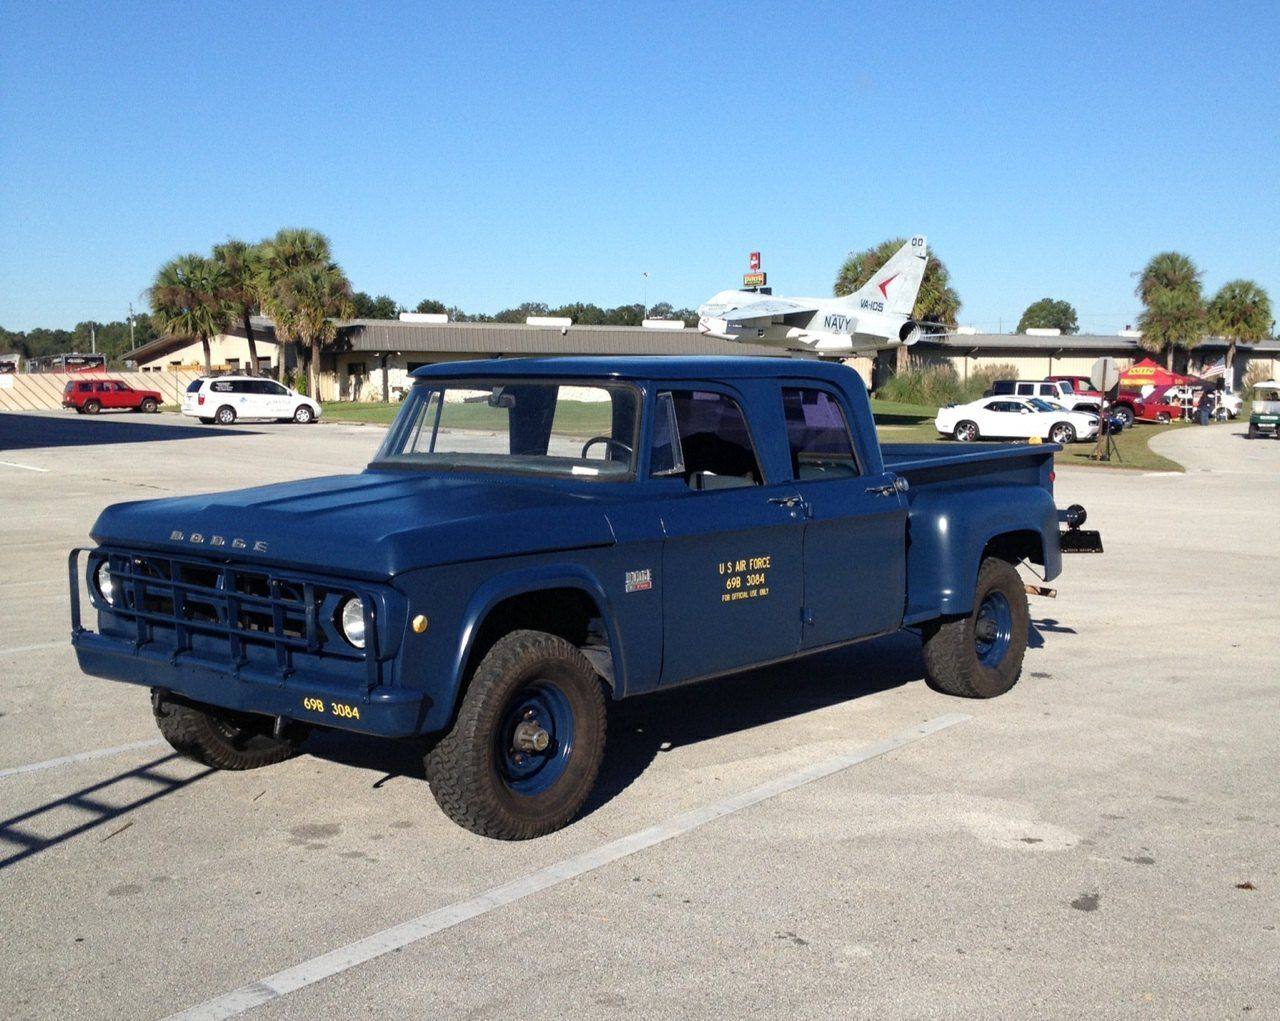 air pressor sales bulldog security m200 wiring diagram force trucks for sale the river city news